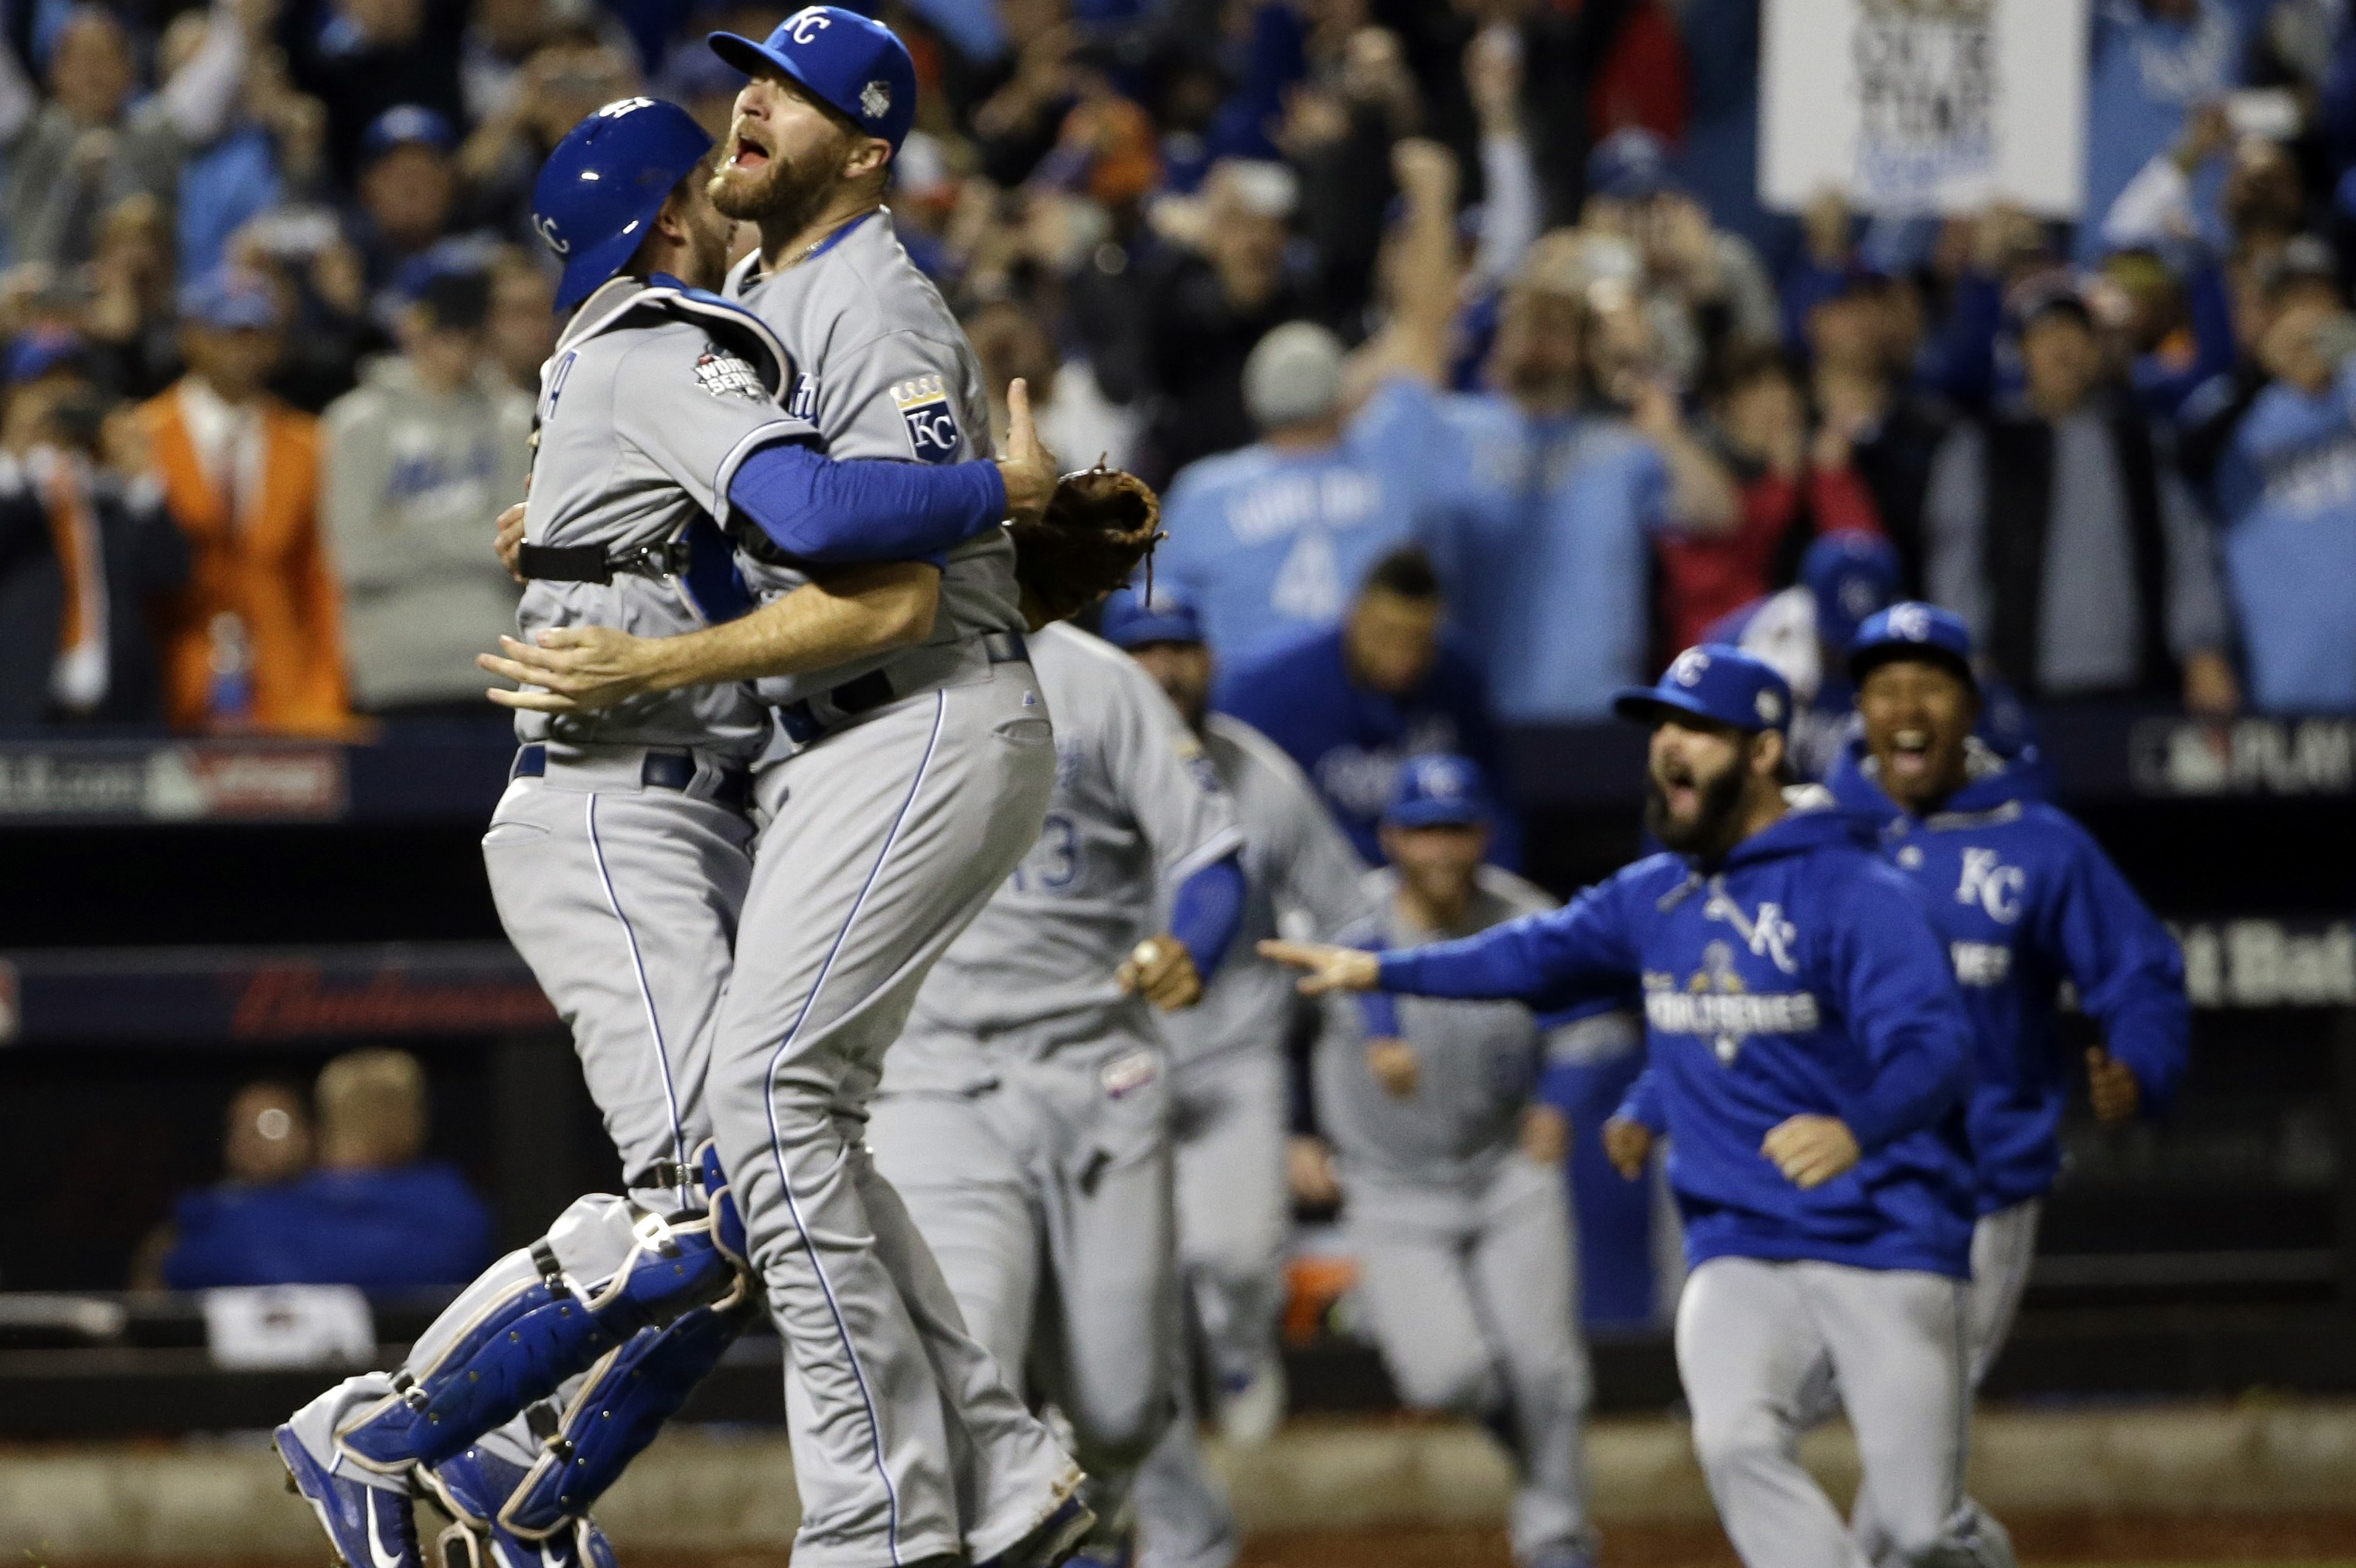 FILE - In this Nov. 2, 2015, file photo, Kansas City Royals catcher Drew Butera and Wade Davis celebrate after Game 5 of the team's baseball World Series against the New York Mets in New York. After winning 95 games, their first division title in three de